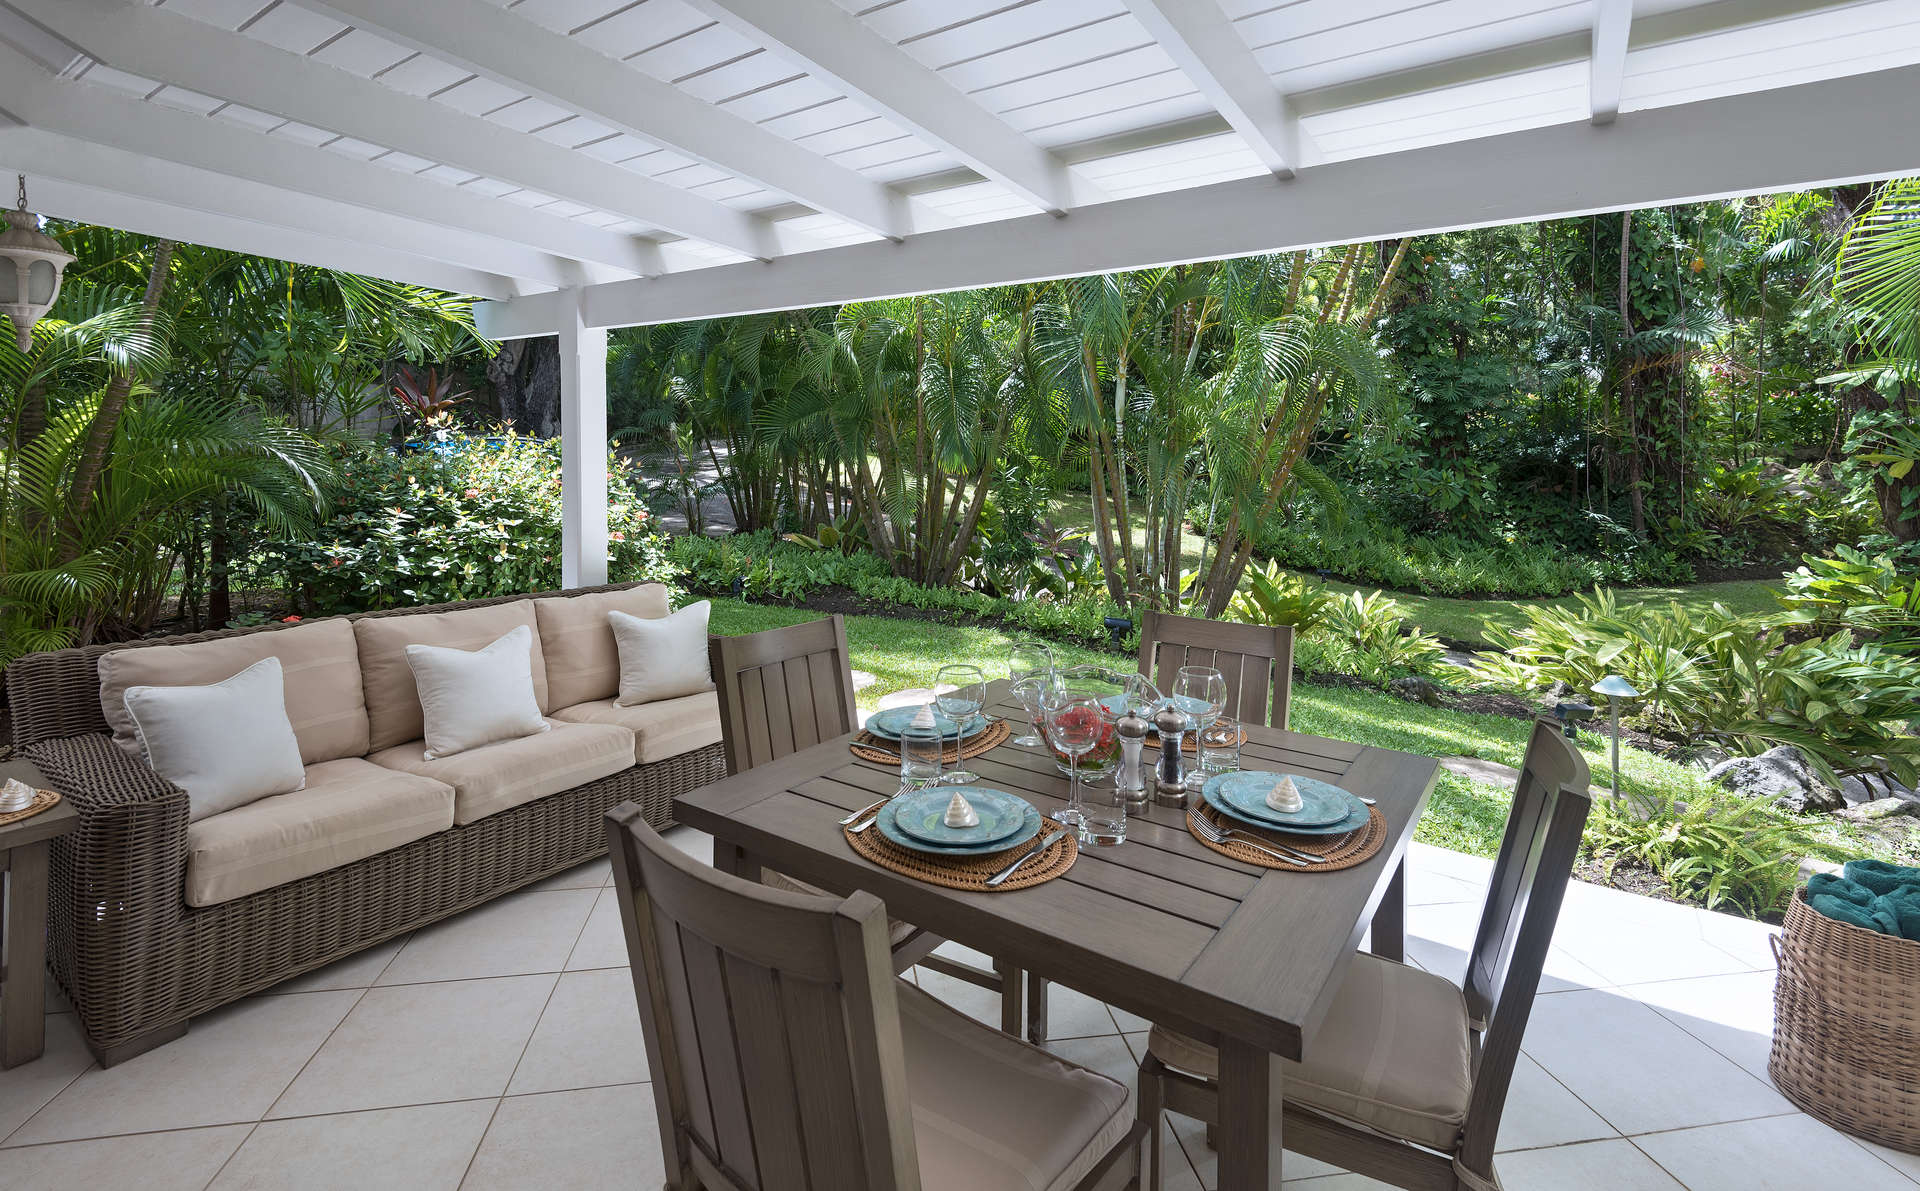 Luxury villa rentals caribbean - Barbados - St james - Sandy lane - Bluff Cottage - Image 1/10